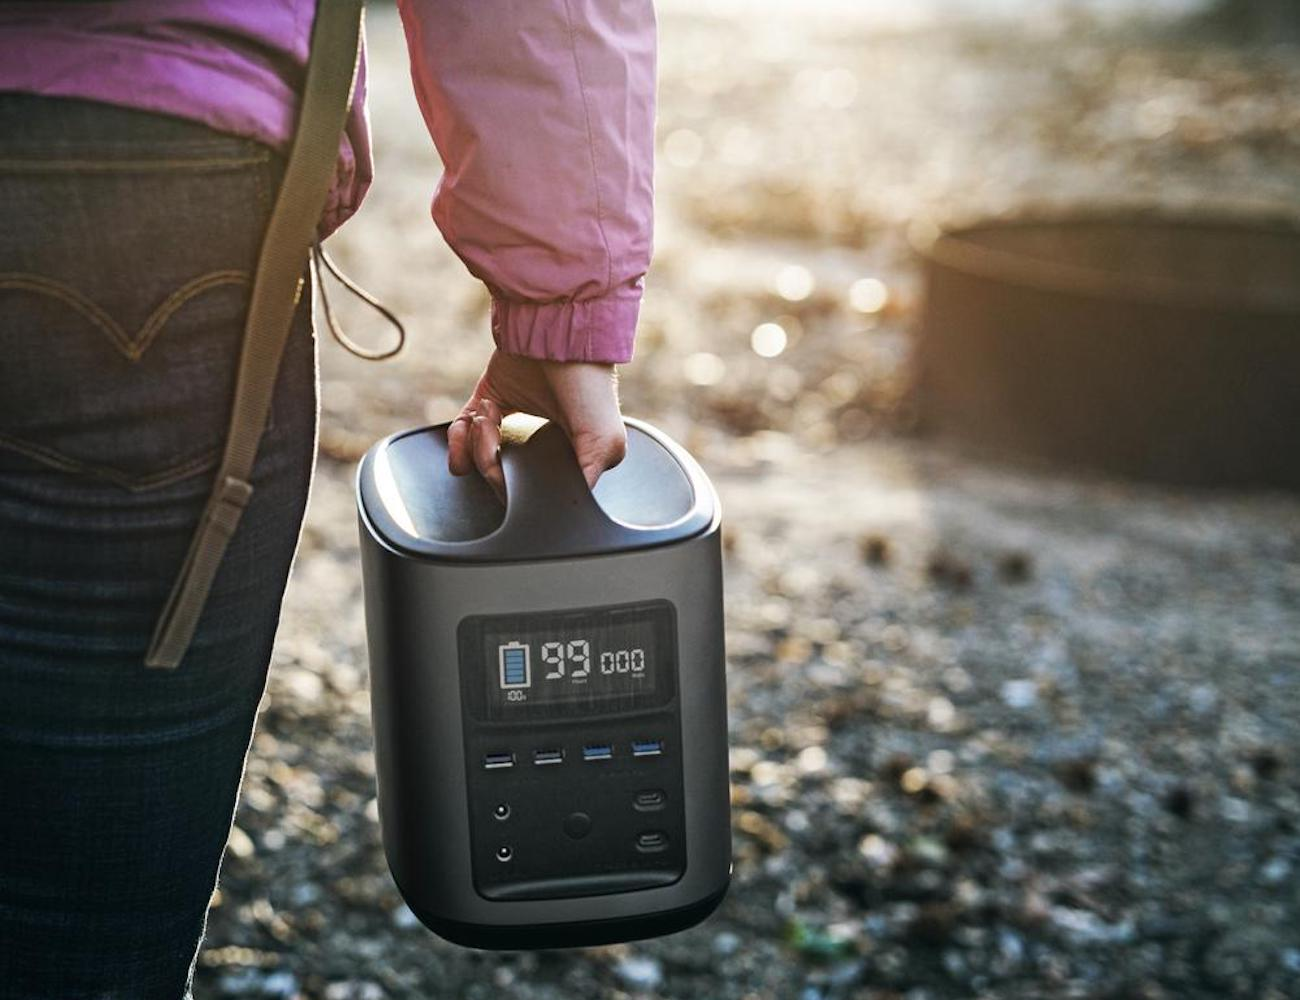 EcoFlow River412 Portable Charging Companion provides industrial-level power